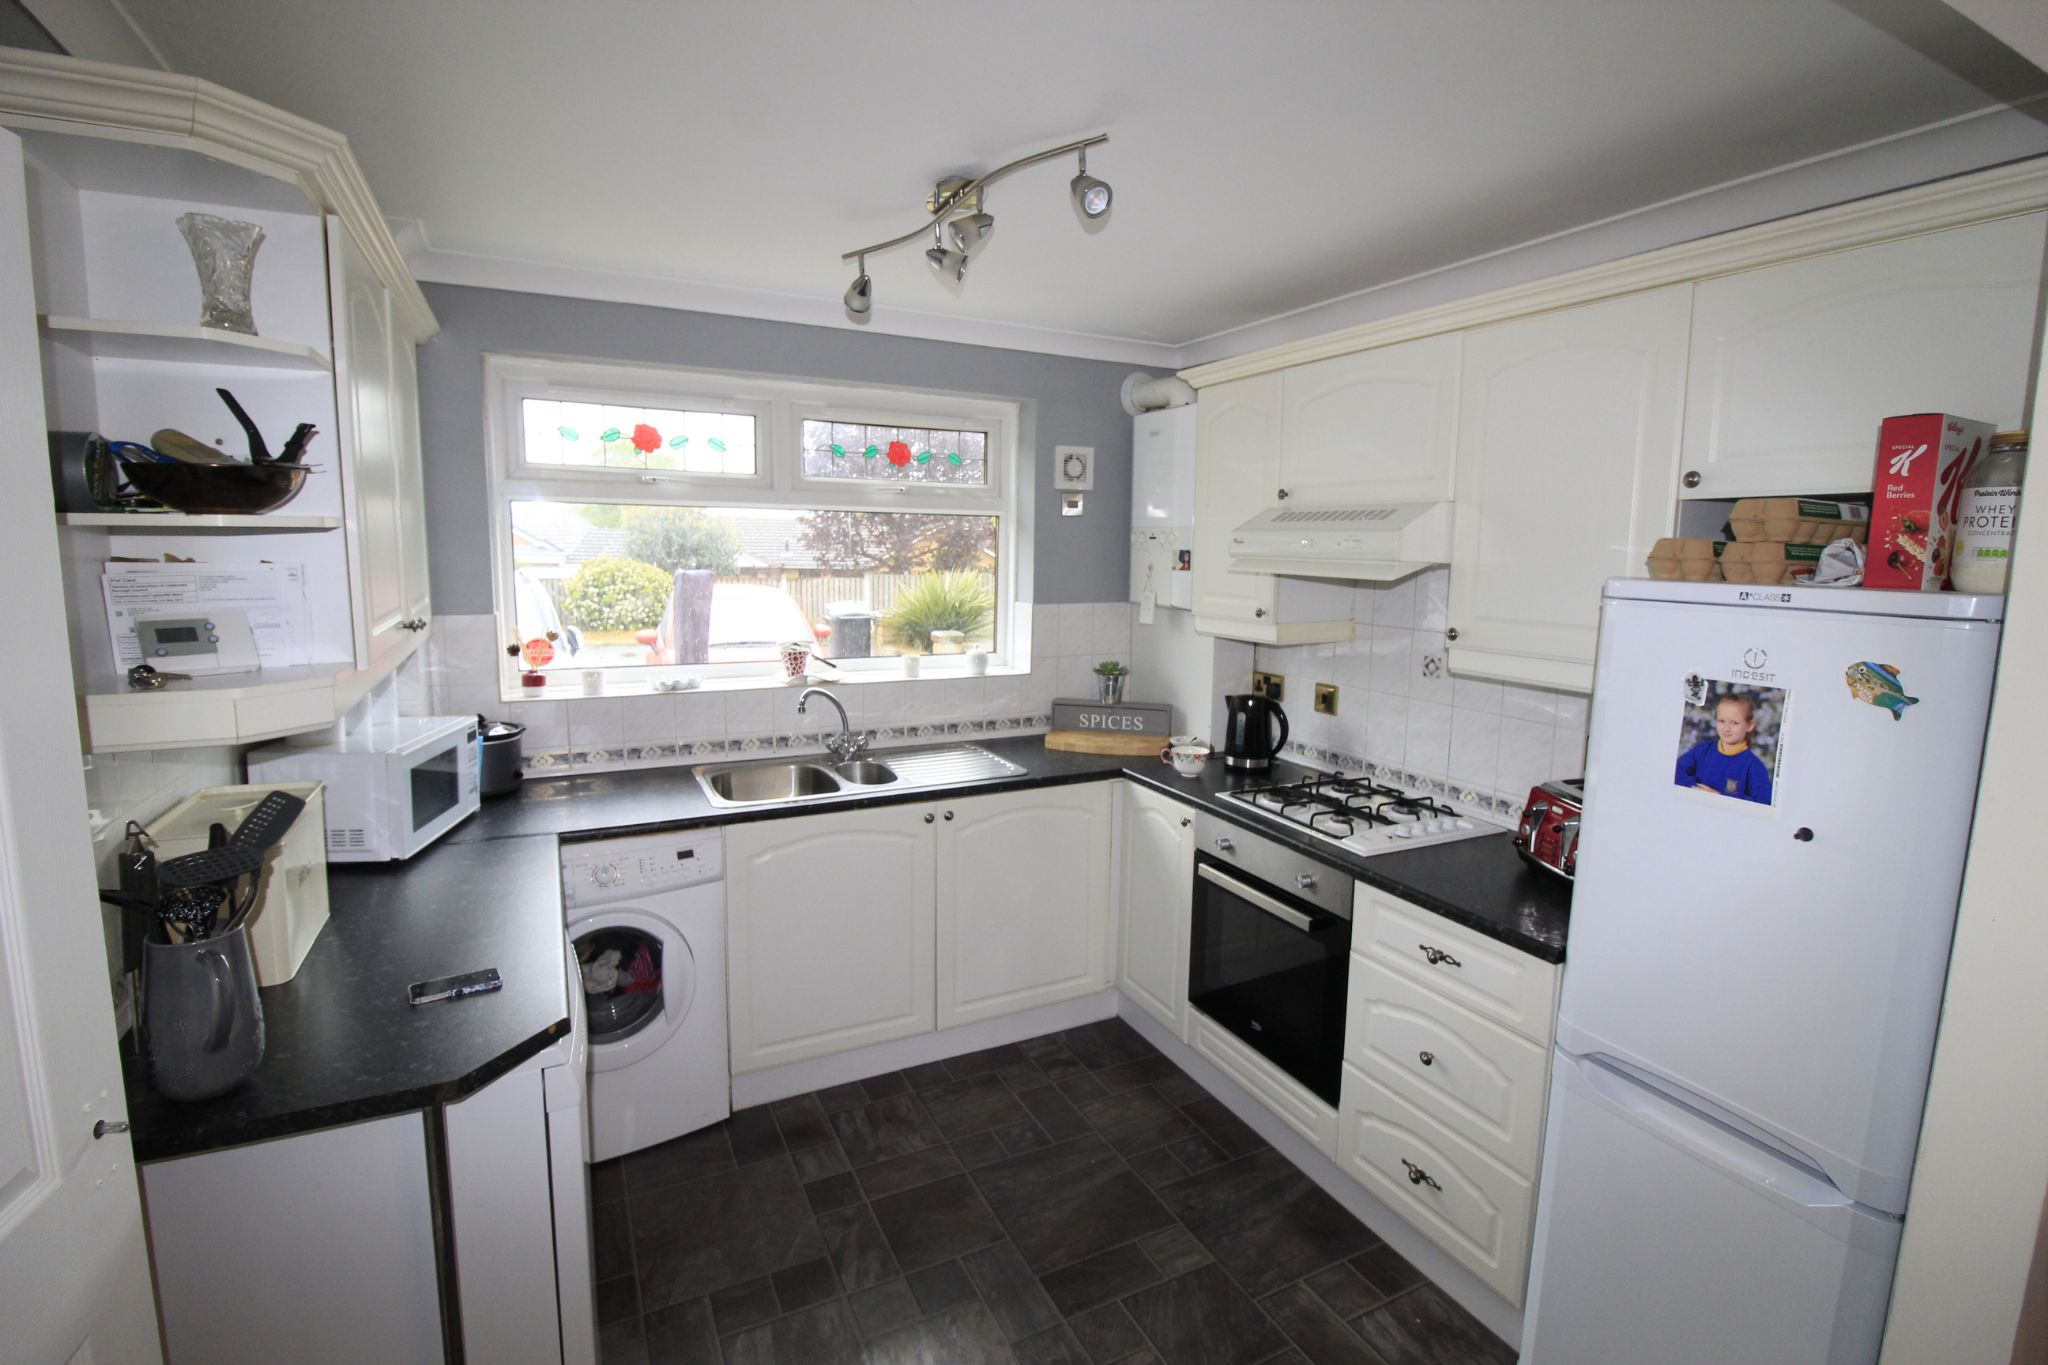 3 bedroom mid terraced house Let in Brighouse - Kitchen